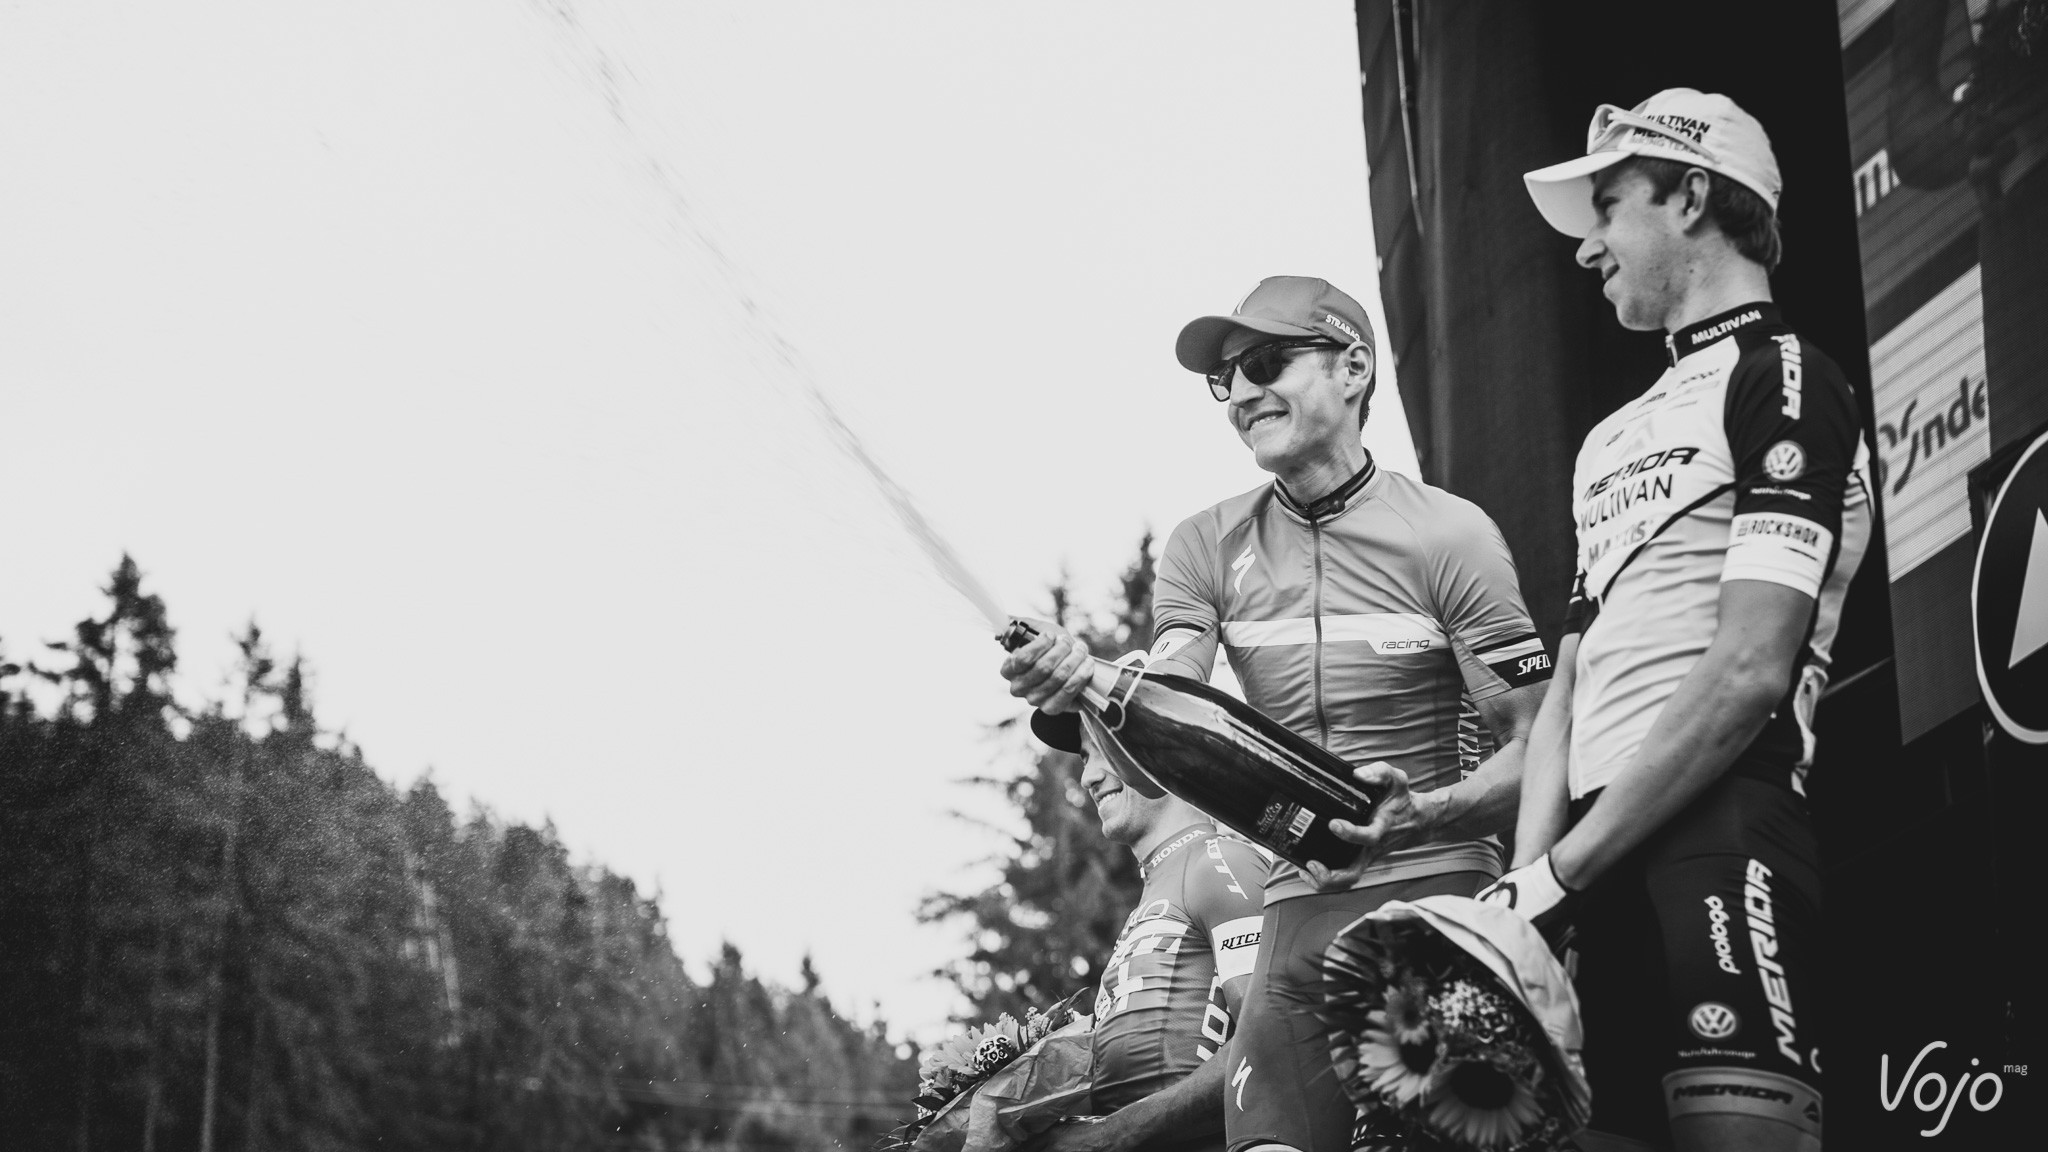 Light-WorldCup-Lenzerheide-2015-XCO-Hommes-43